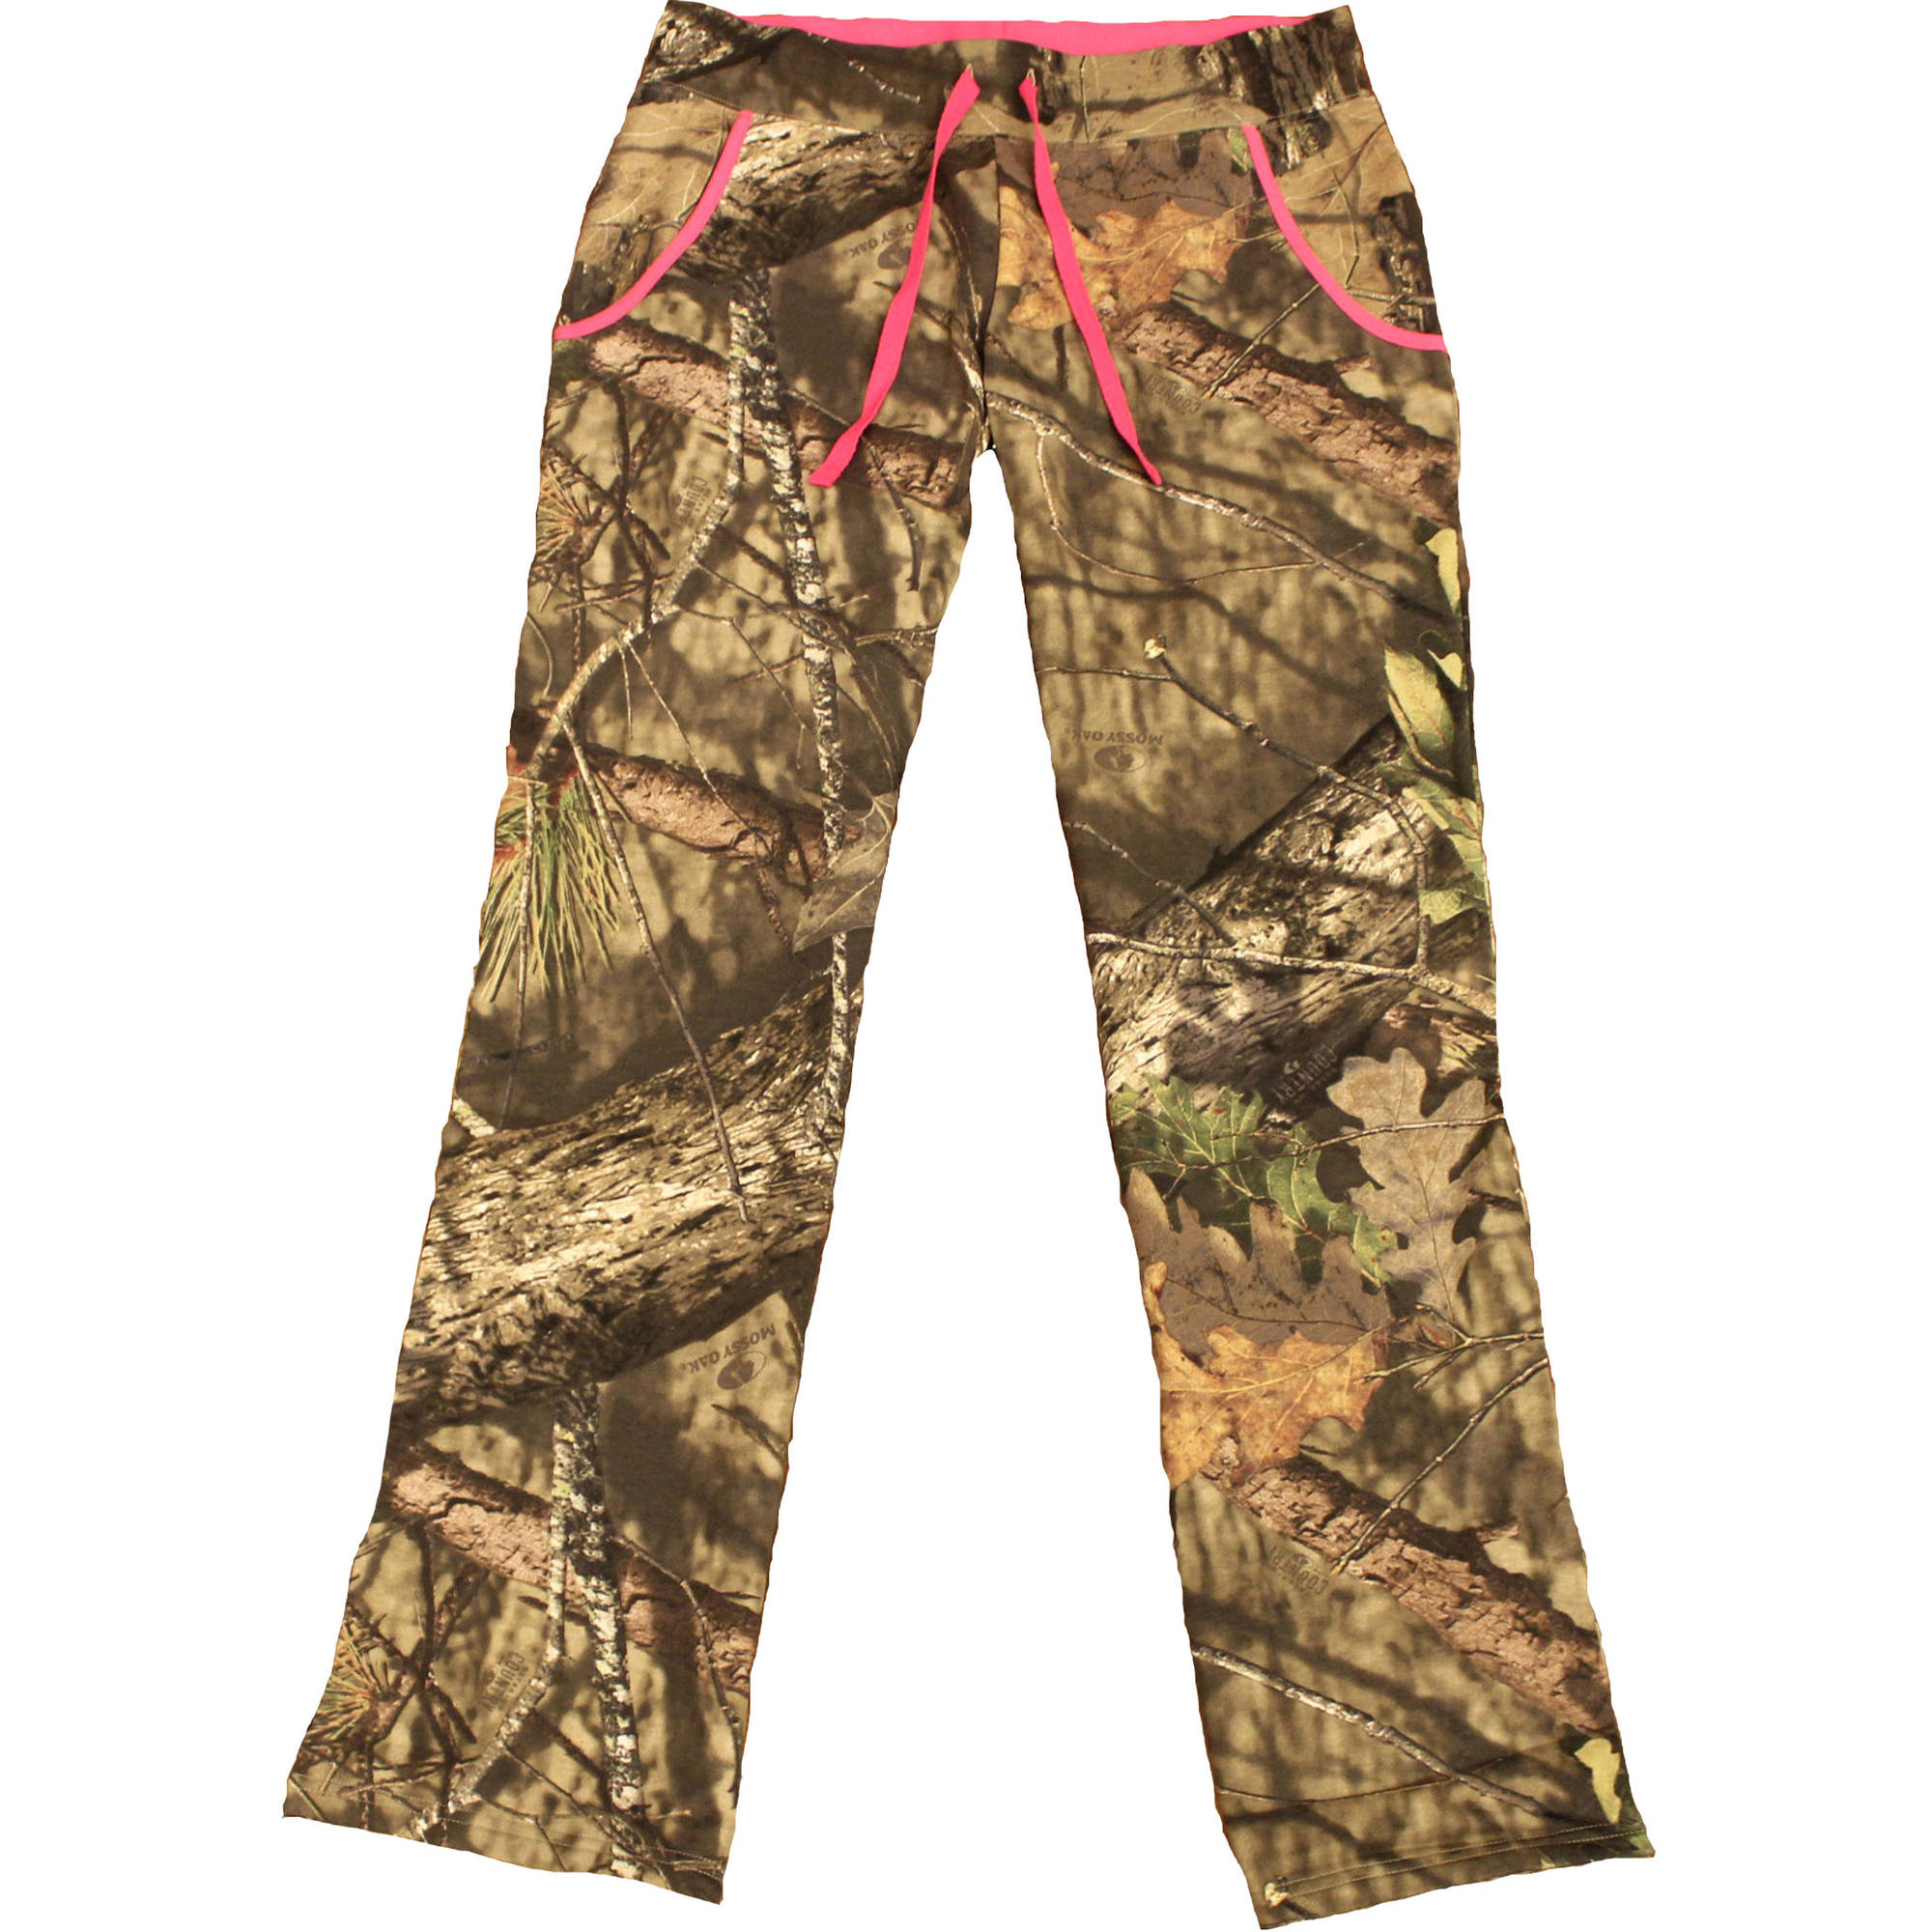 Mossy Oak Women's Fleece Camo Sweatpants, MO Country by